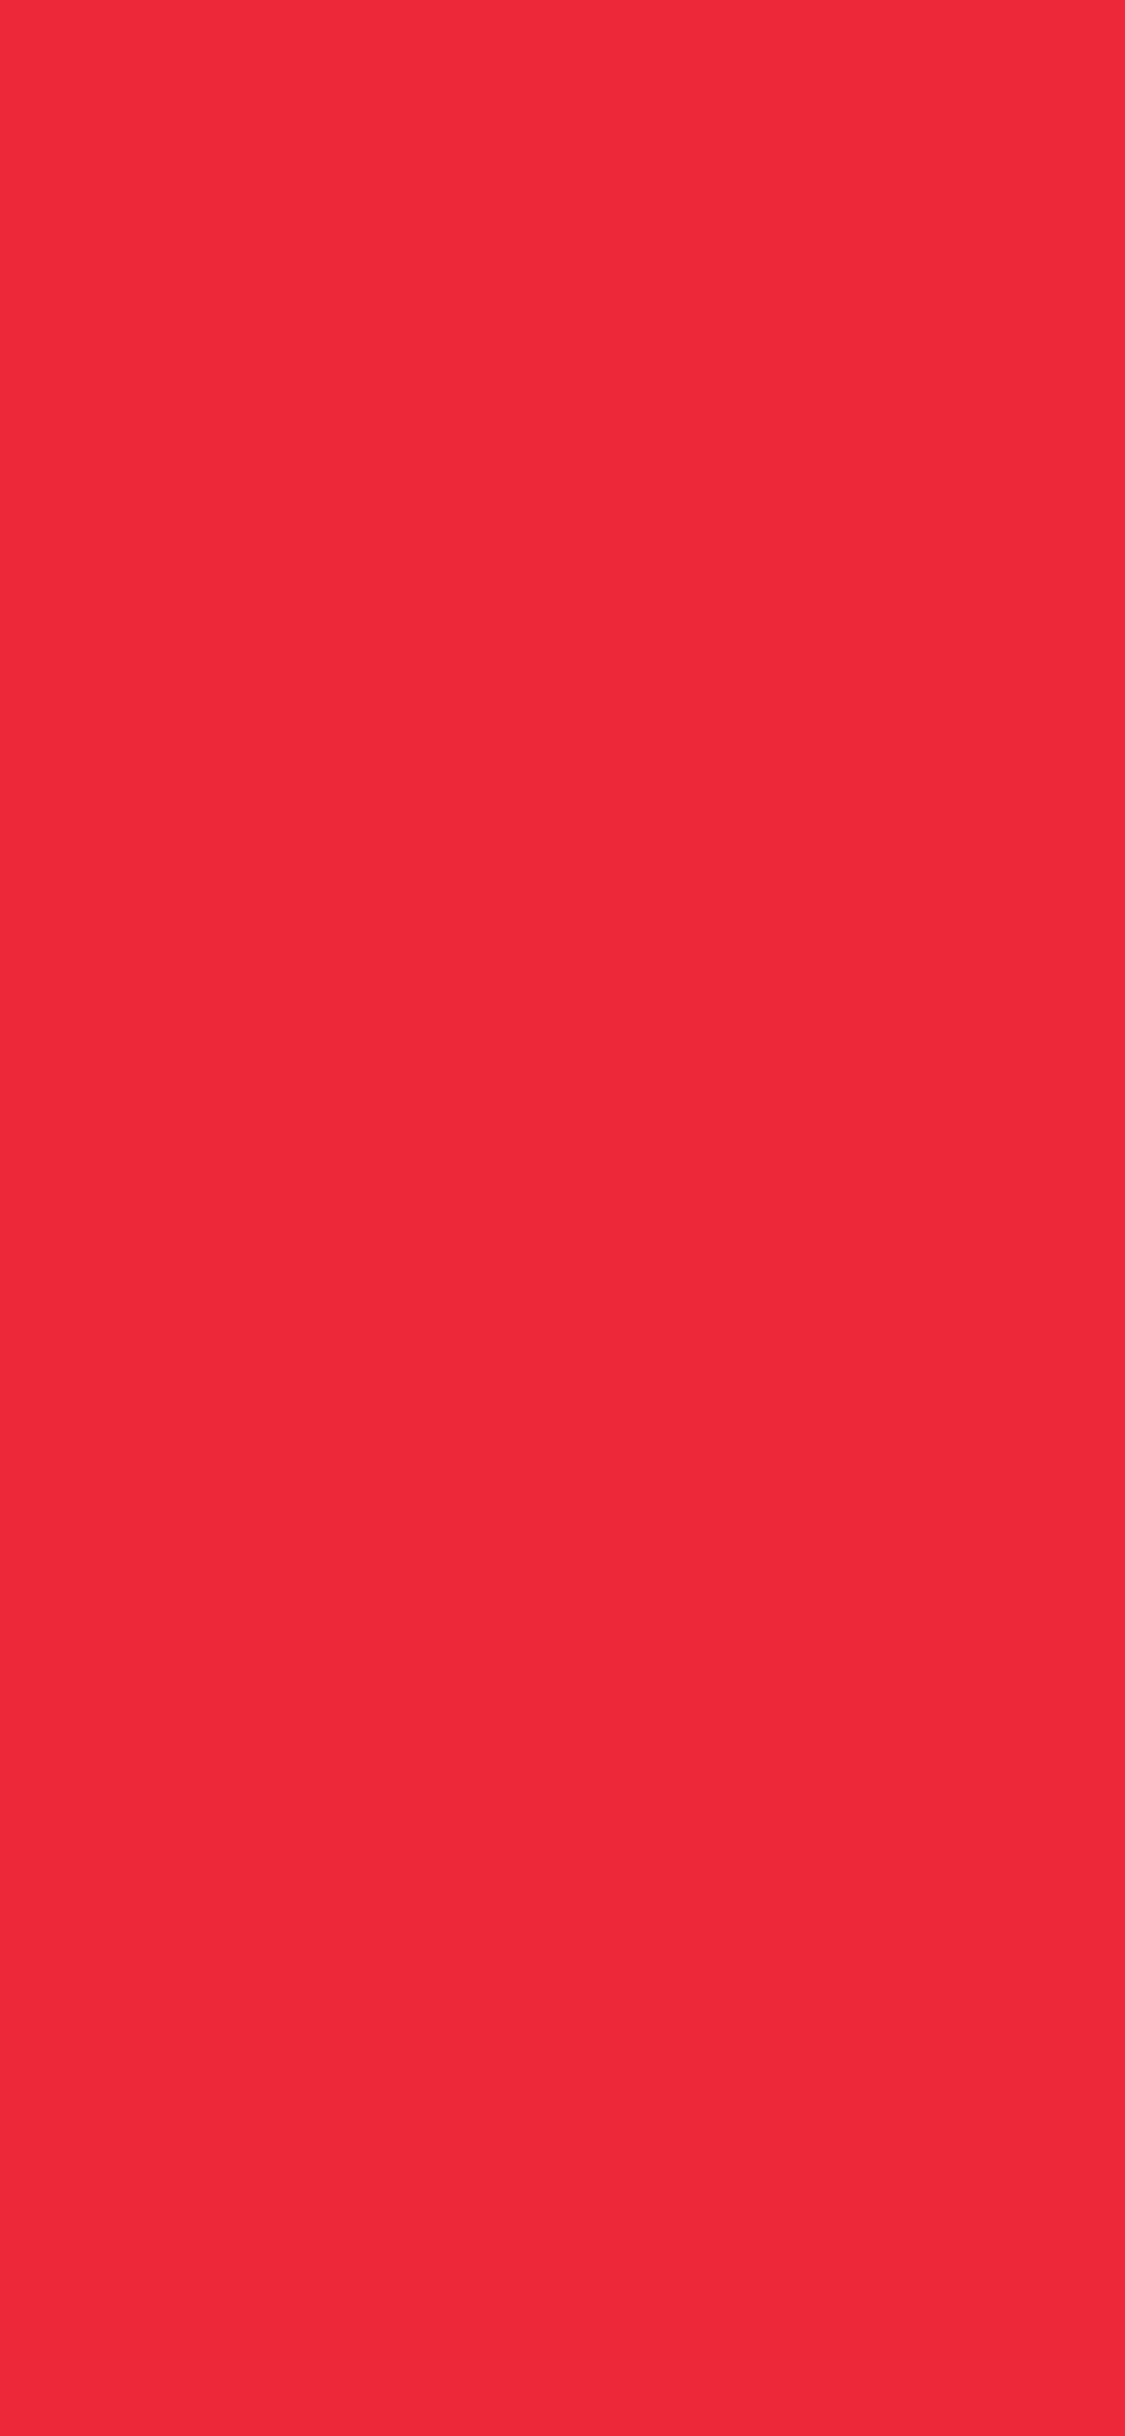 1125x2436 Imperial Red Solid Color Background